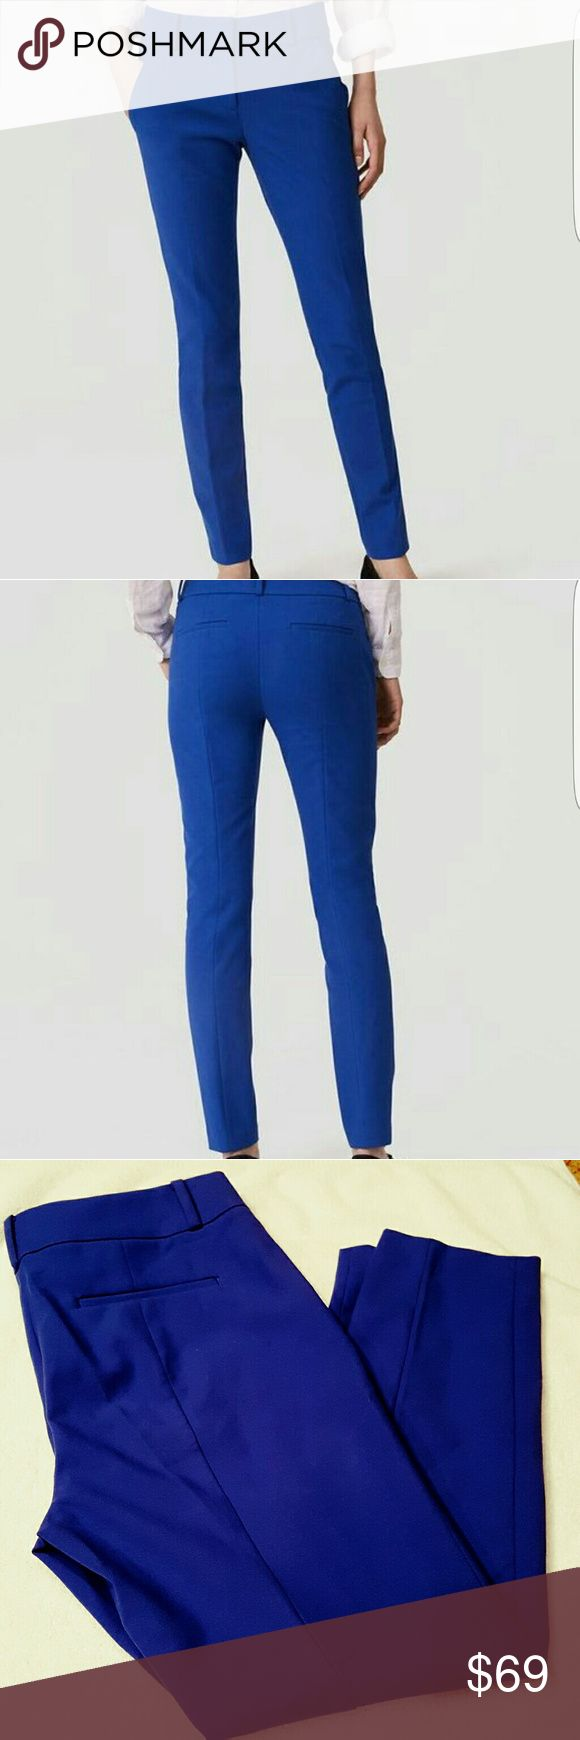 SALE! LOFT Marisa Skinny Ankle Pants Brand new with tags.  Ann Taylor LOFT Colbalt Blue Marisa Skinny Ankle Pants  (This popular Color is sold out on LOFT online) Further Product description in picture 4  No trades. LOFT Pants Ankle & Cropped